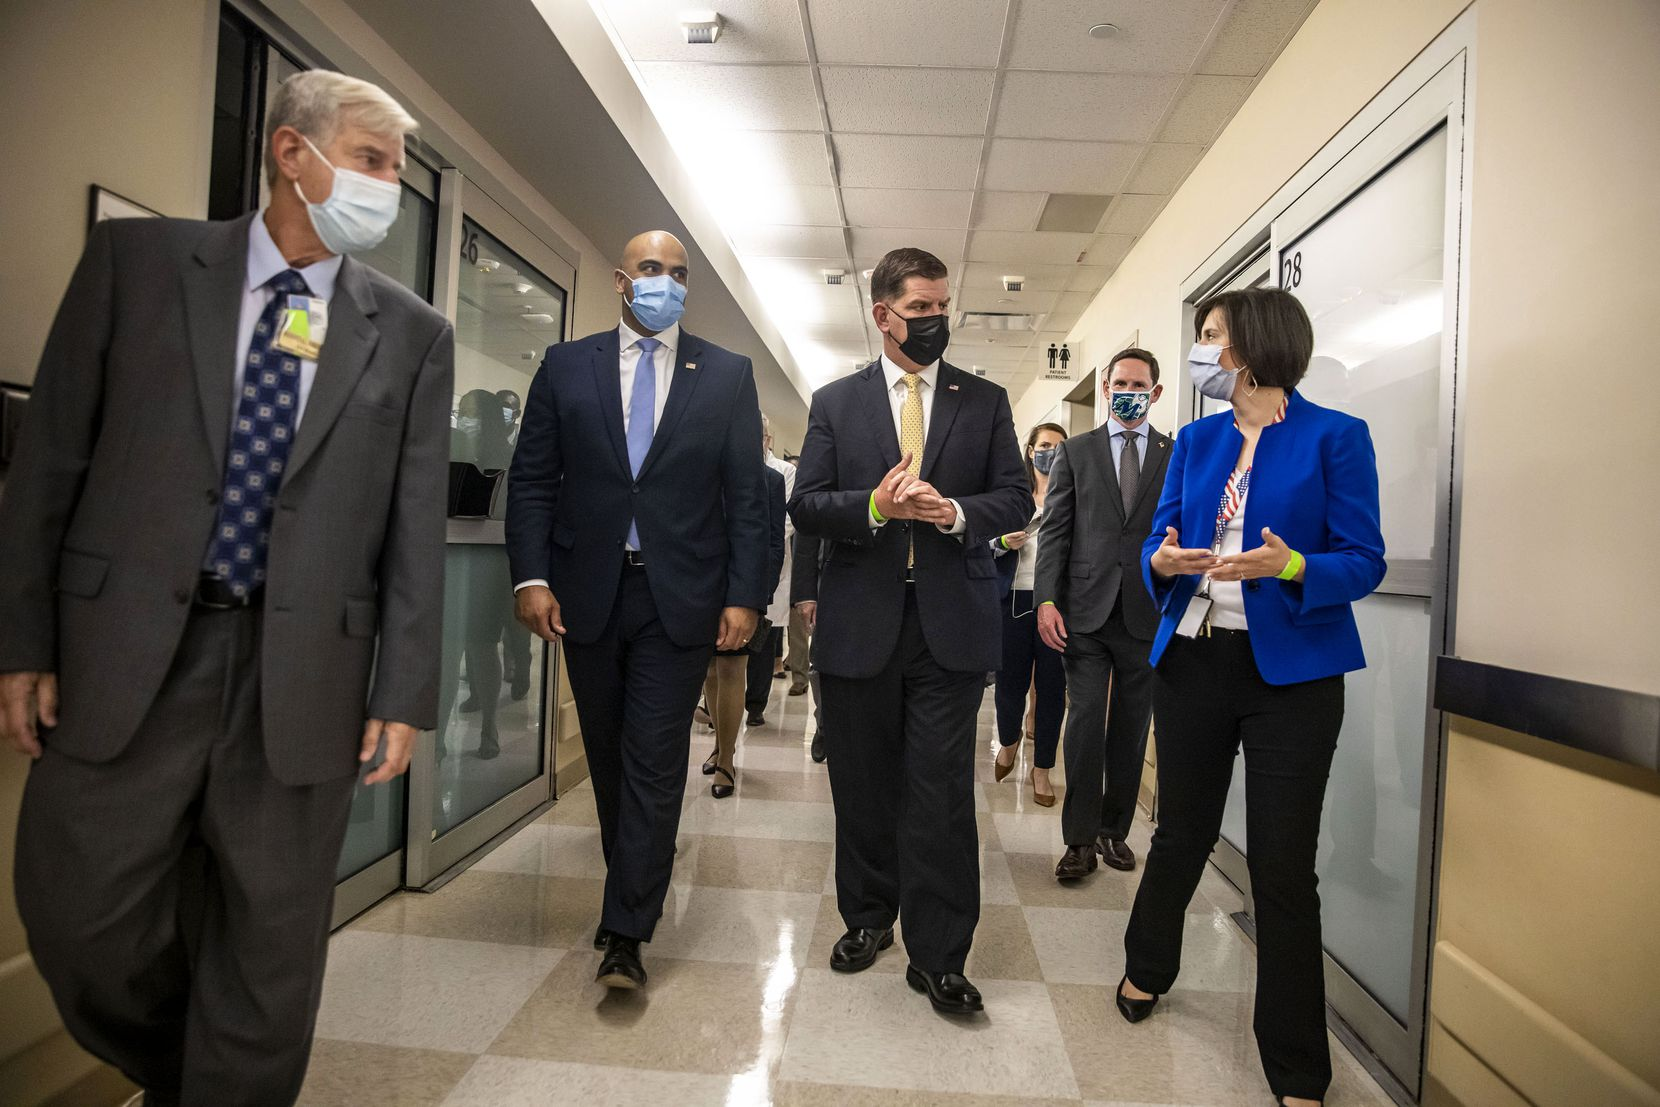 U.S. Labor Secretary Martin Walsh (center) toured the Garland Veterans Affairs Medical Center with Rep. Colin Allred (second from left) on Thursday.